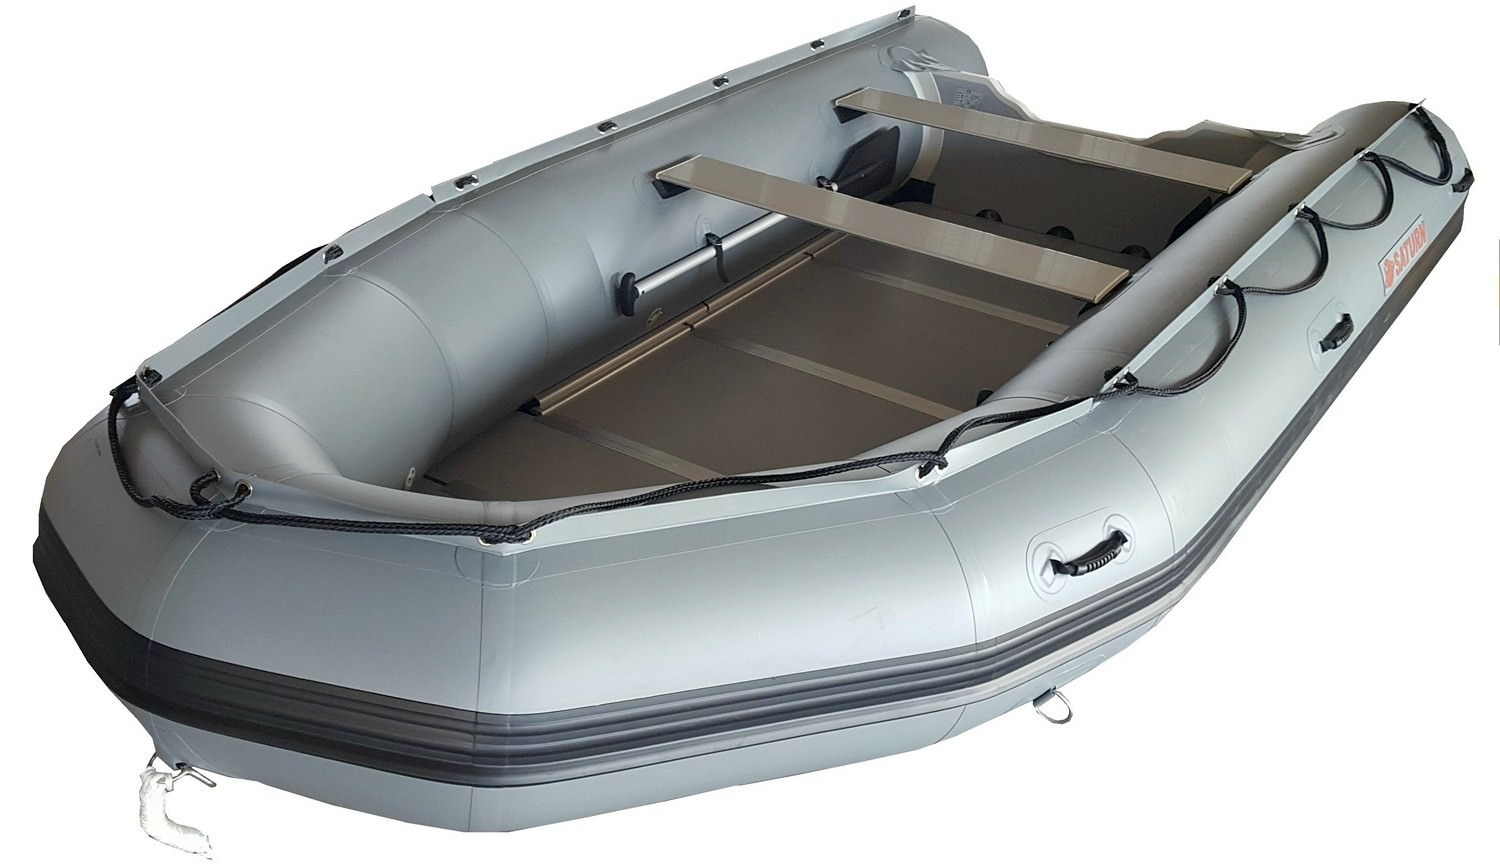 14' Saturn Inflatable Boat SD430 - Gun Metal Gray (Alum. Floor Upgrade Not Shown)